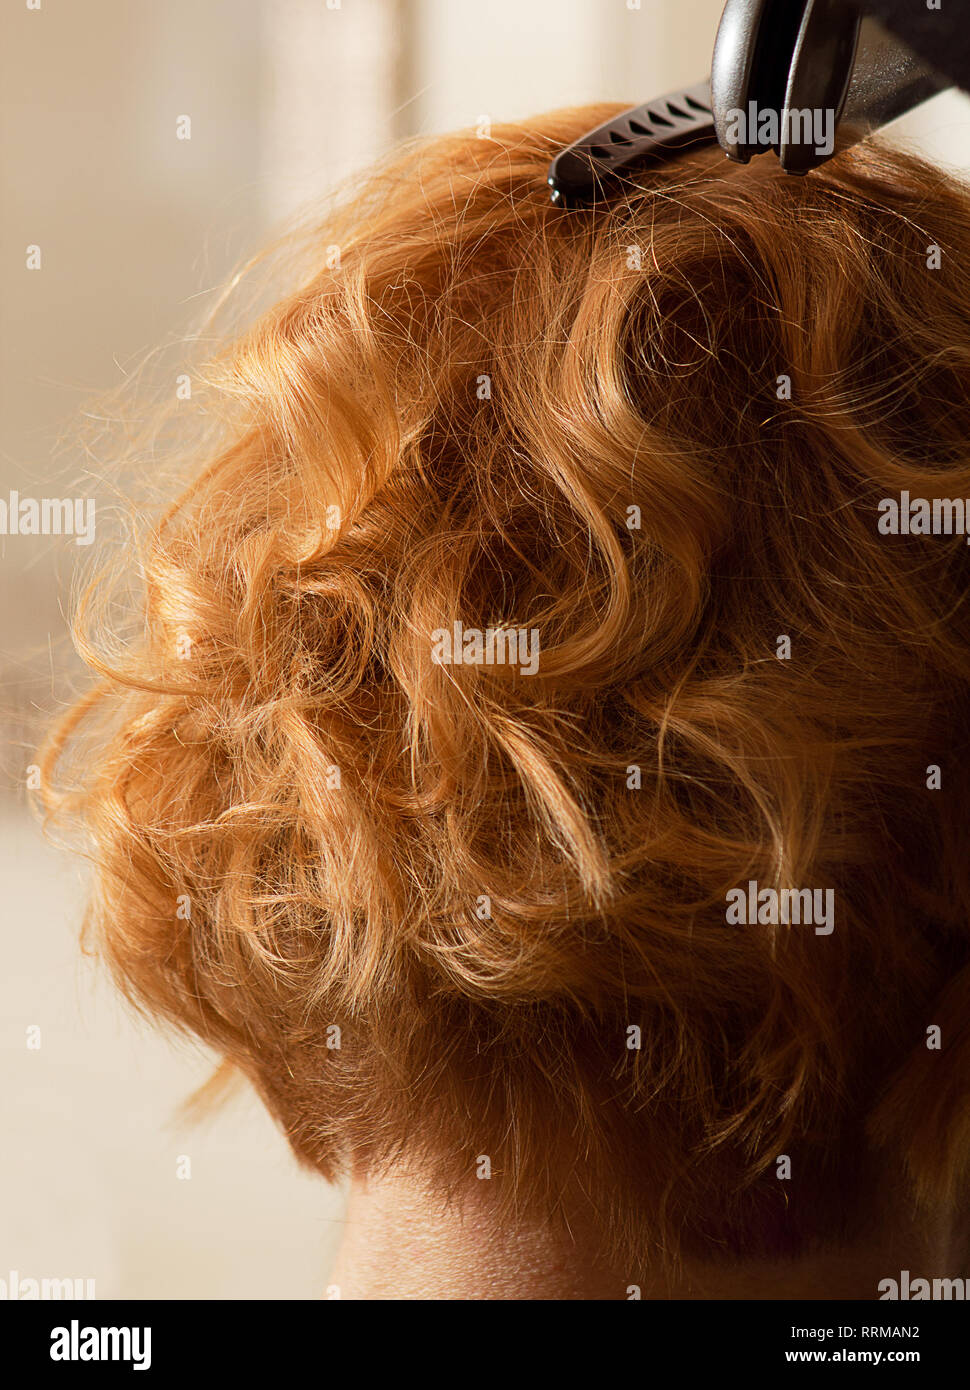 Hairstylist Curl Short Hair With Flat Iron Stock Photo Alamy